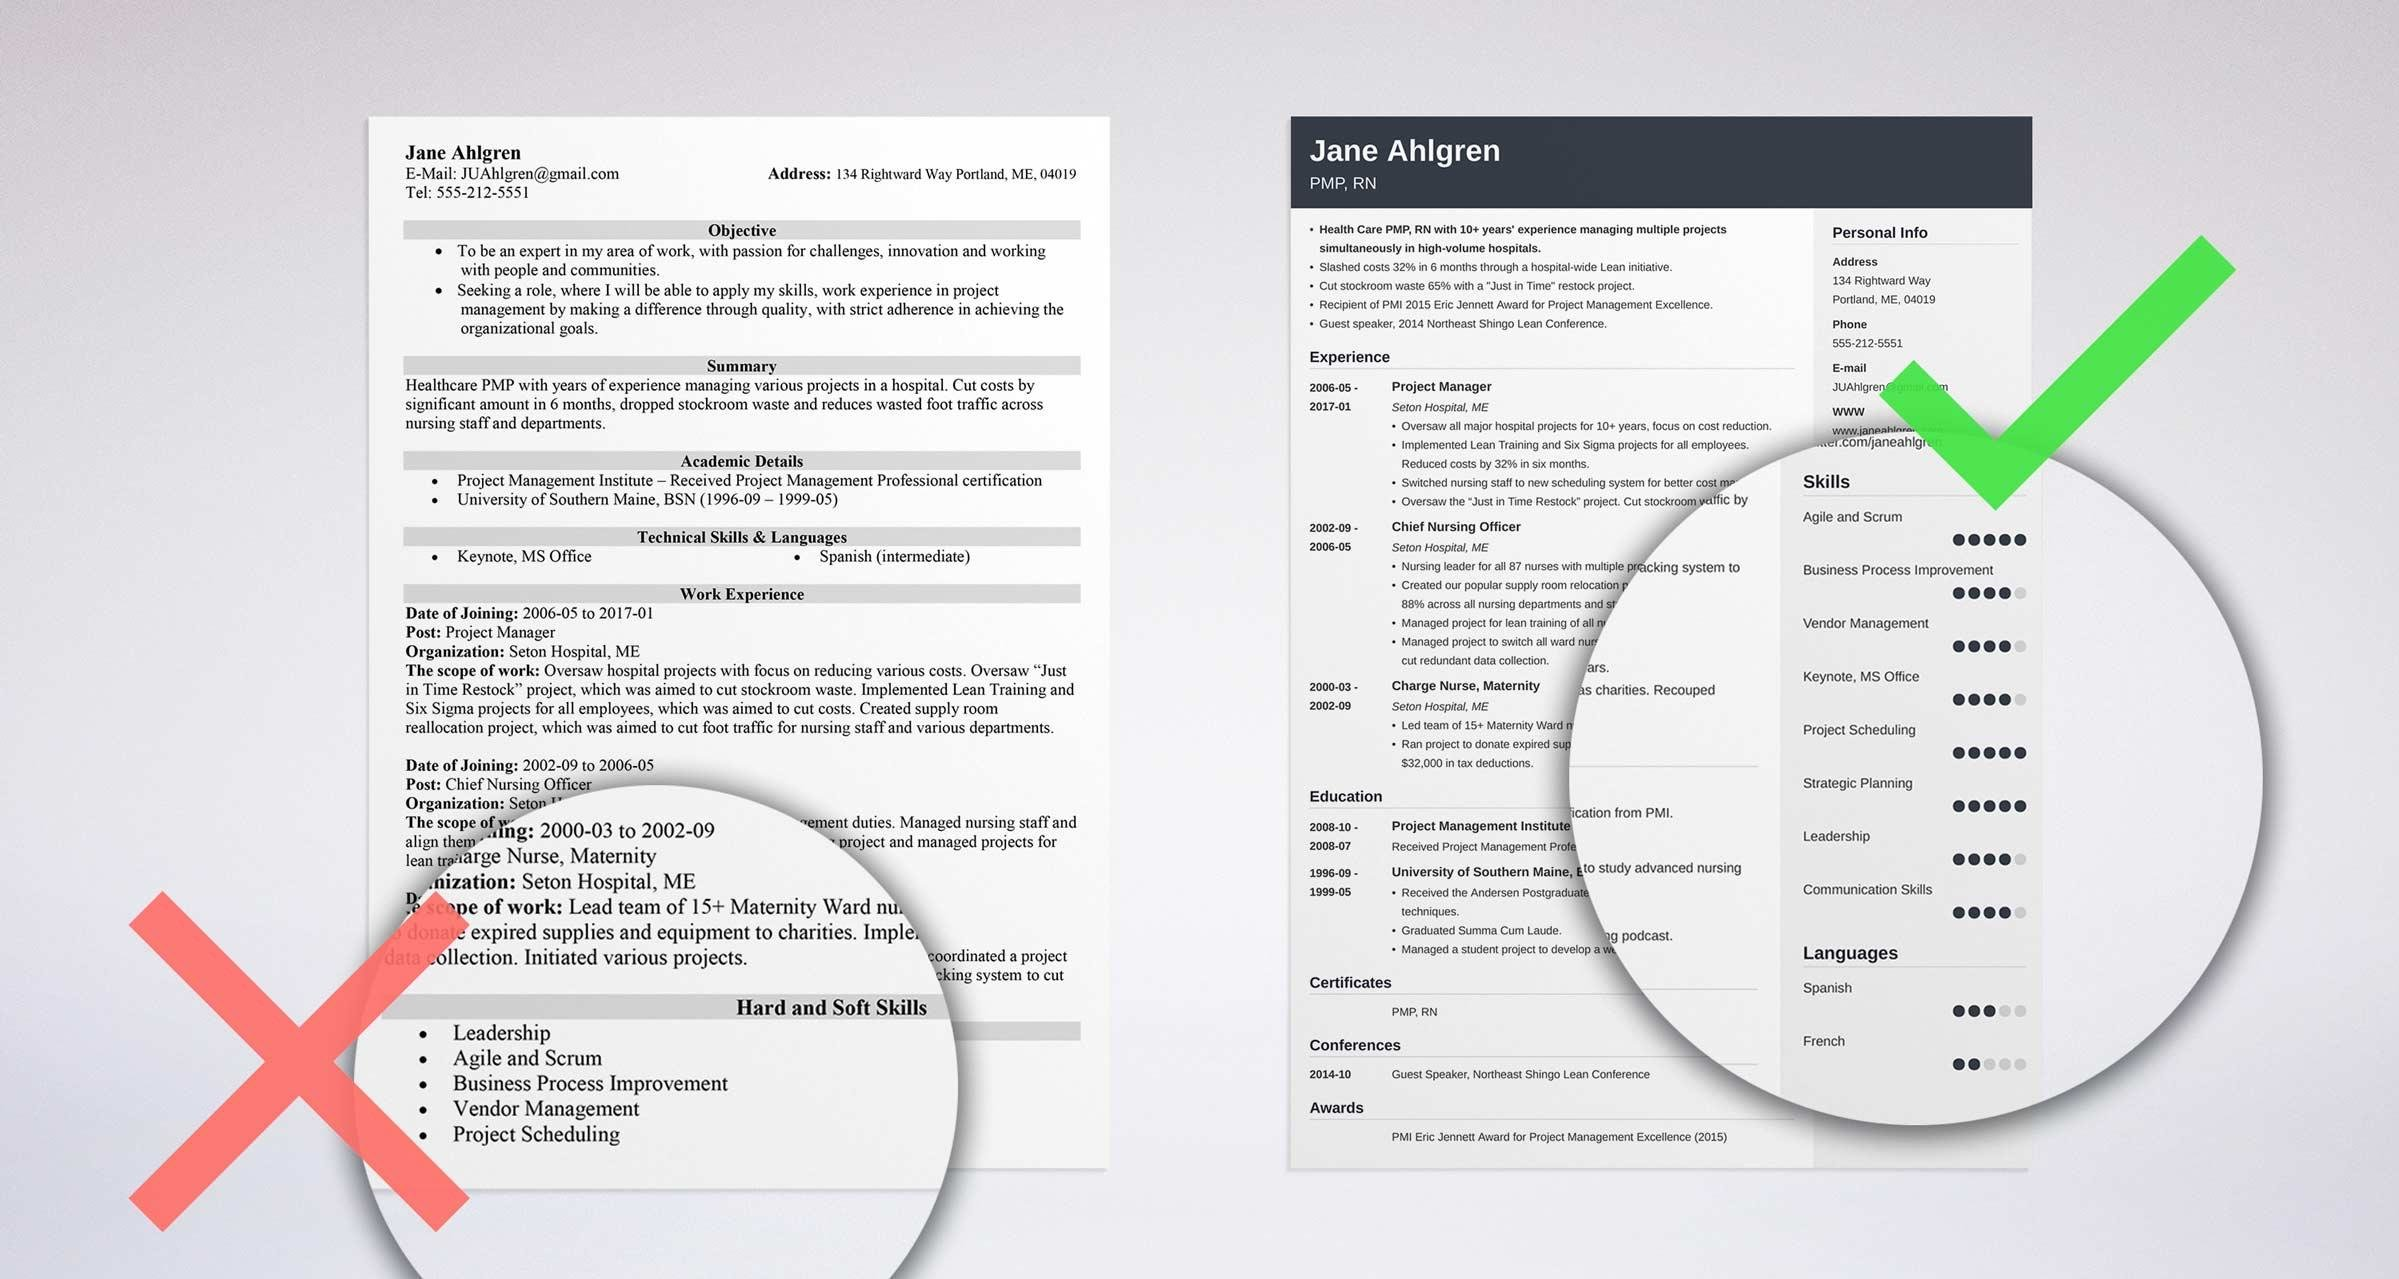 skills for resume best of examples all jobs can put on resume1 free physician search Resume Skills I Can Put On A Resume